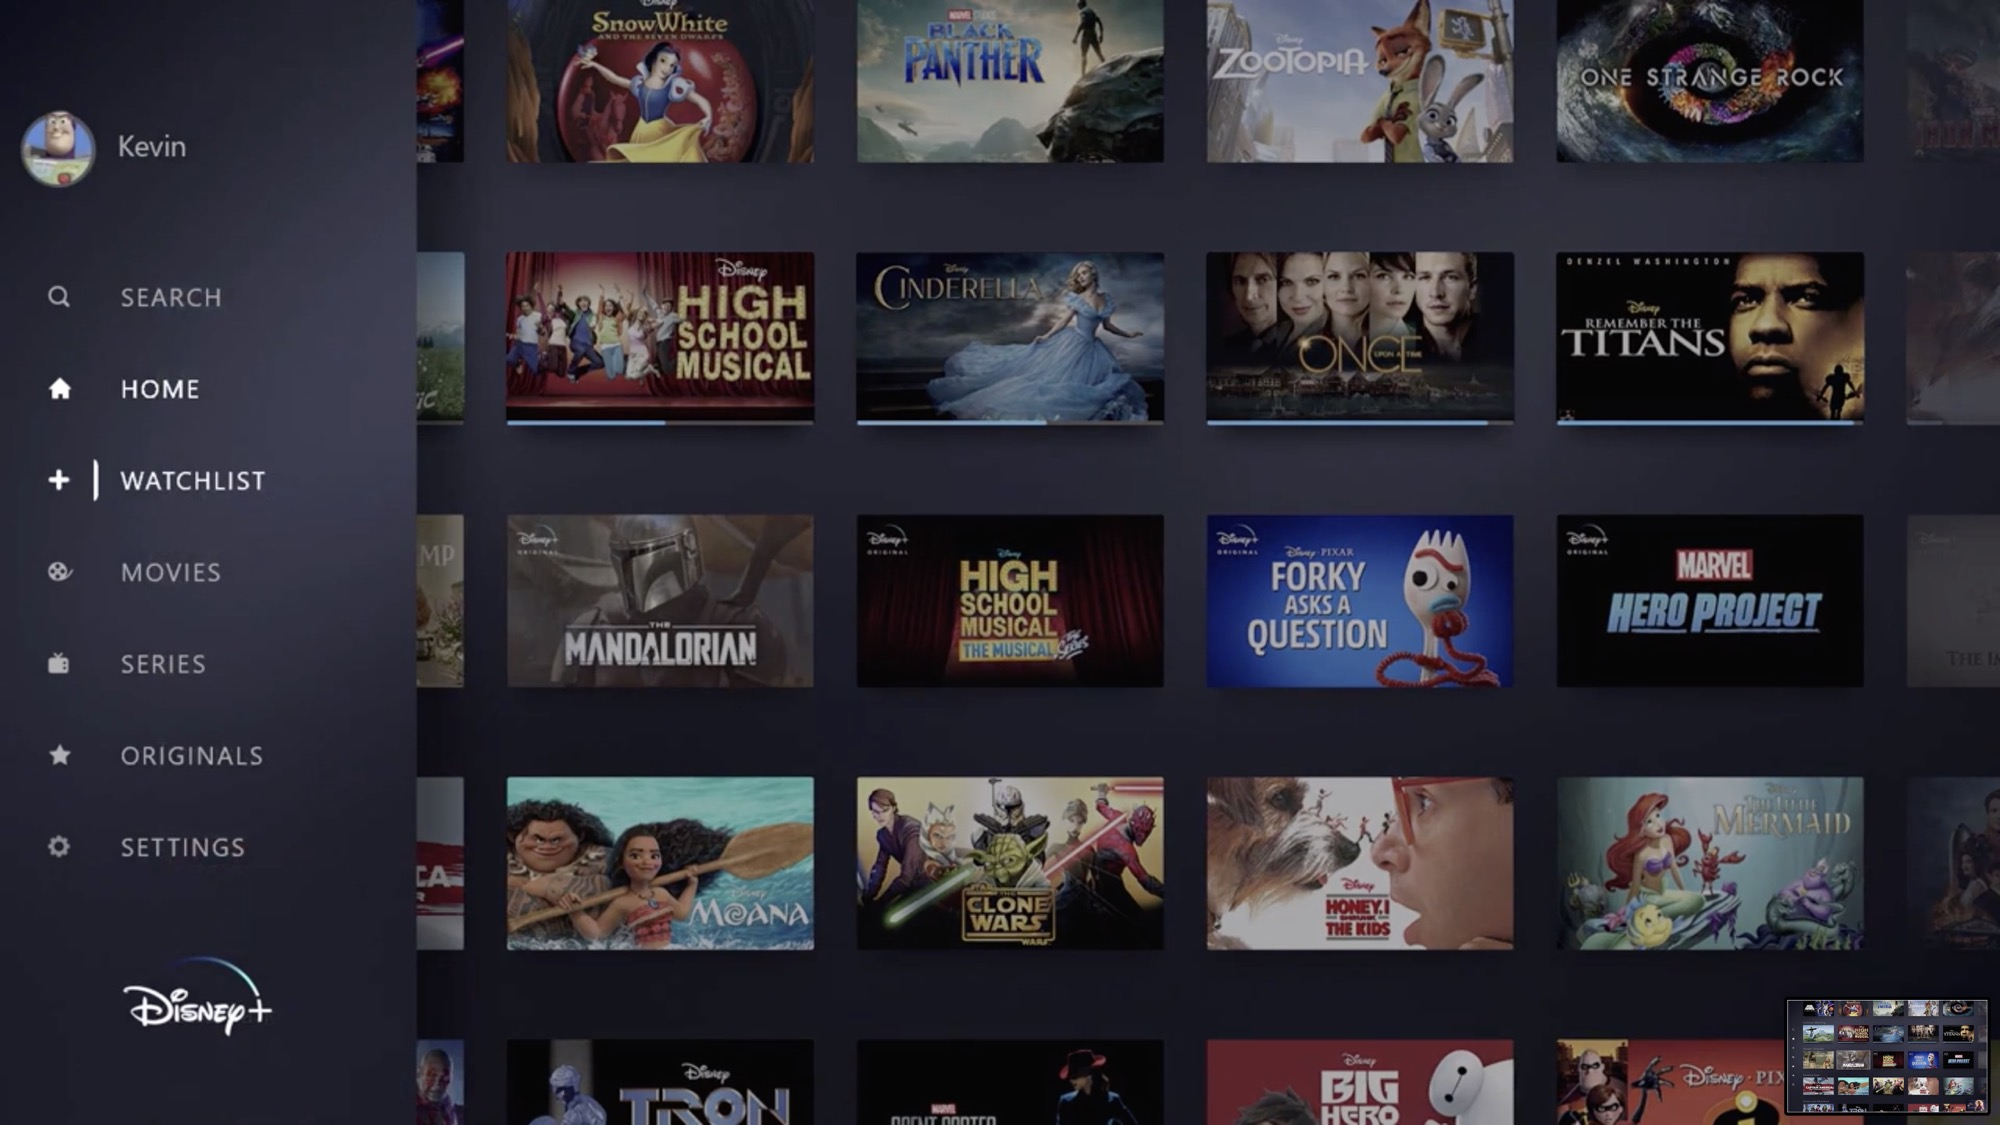 Disney+ launching on November 12 for $7/month with 4K HDR content